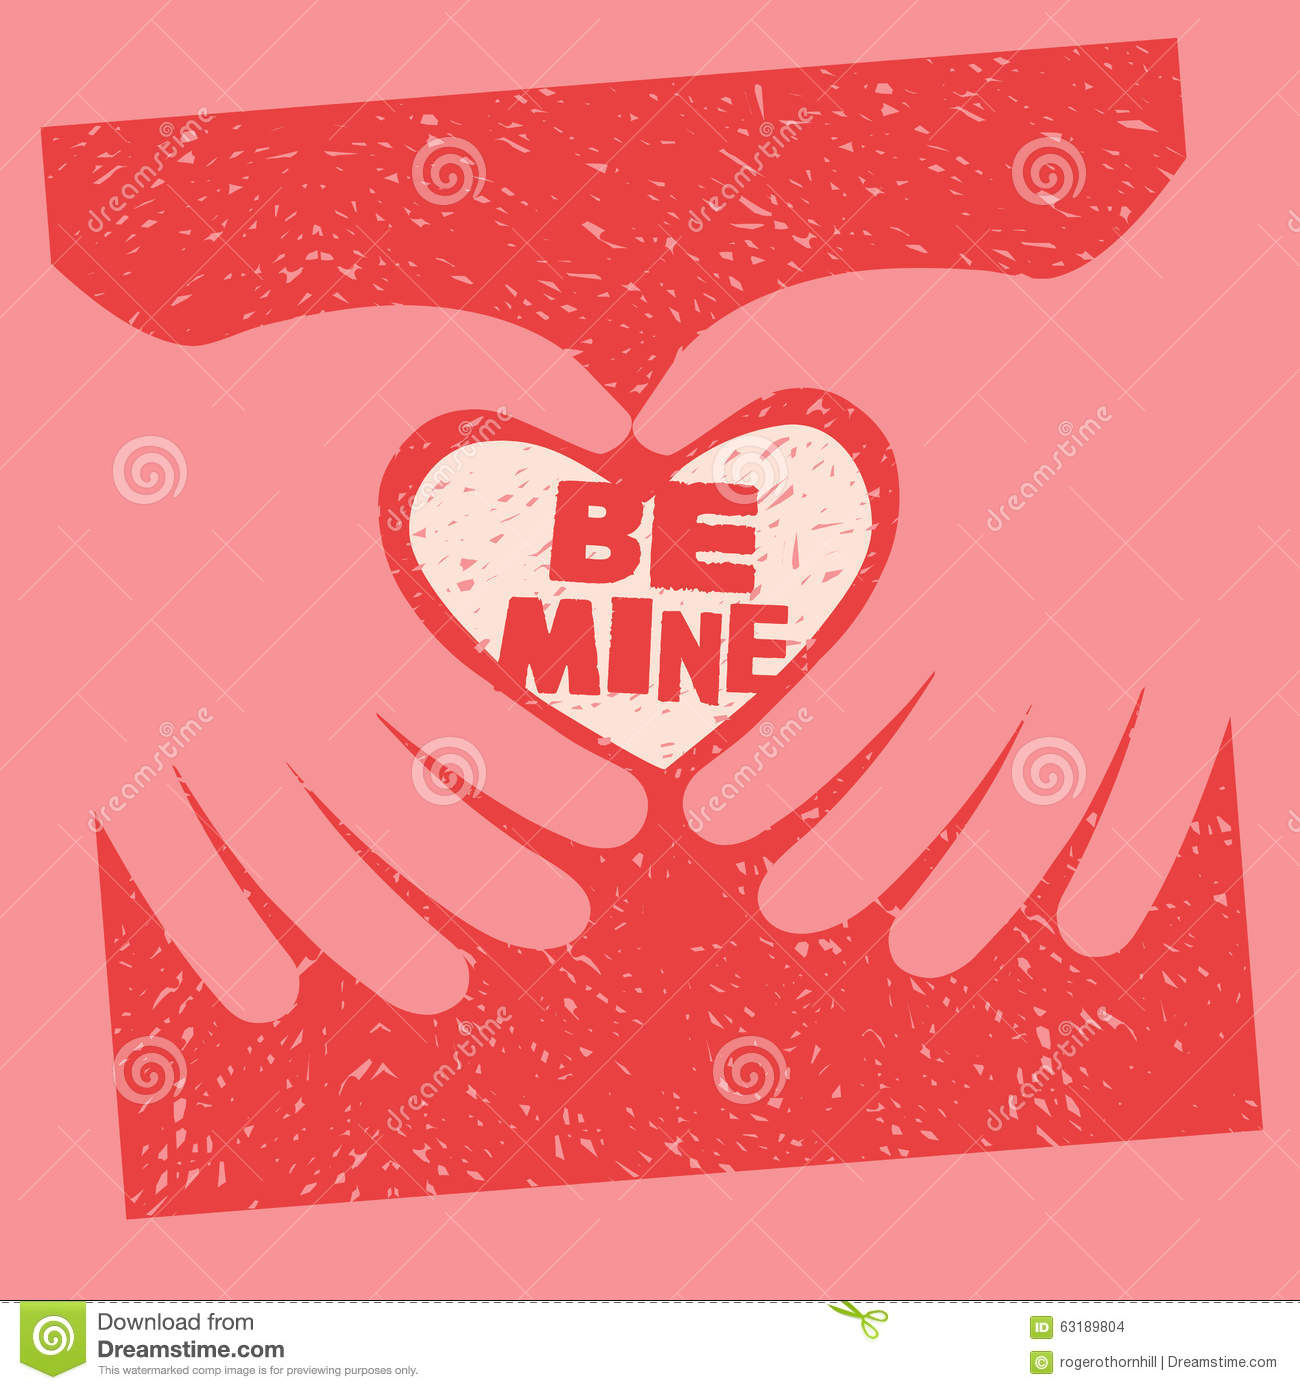 Valentines Day Card With Message Be Mine Vector Image – What to Right on a Valentine Day Card